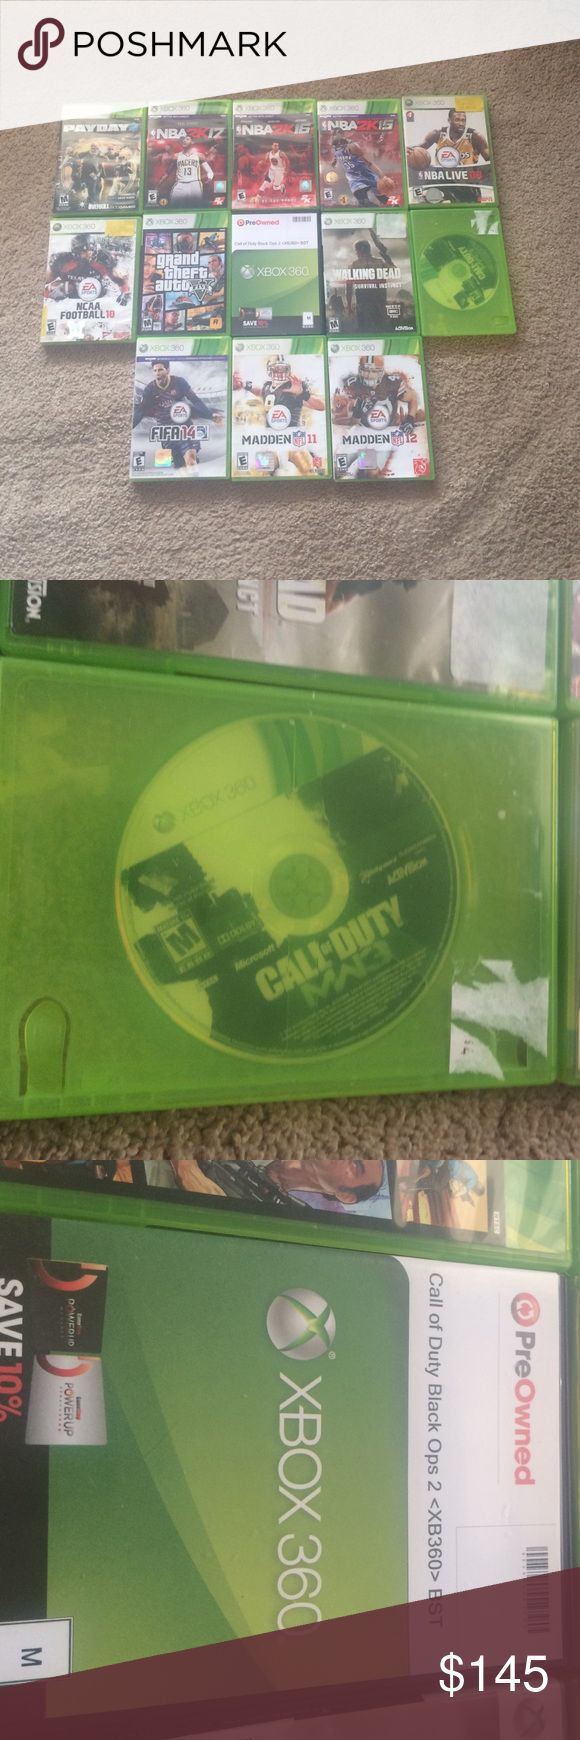 Pics photos grand theft auto iv the law breaking spree continues - Xbox 360 Games Payday 2xbox 360 Gamesgta